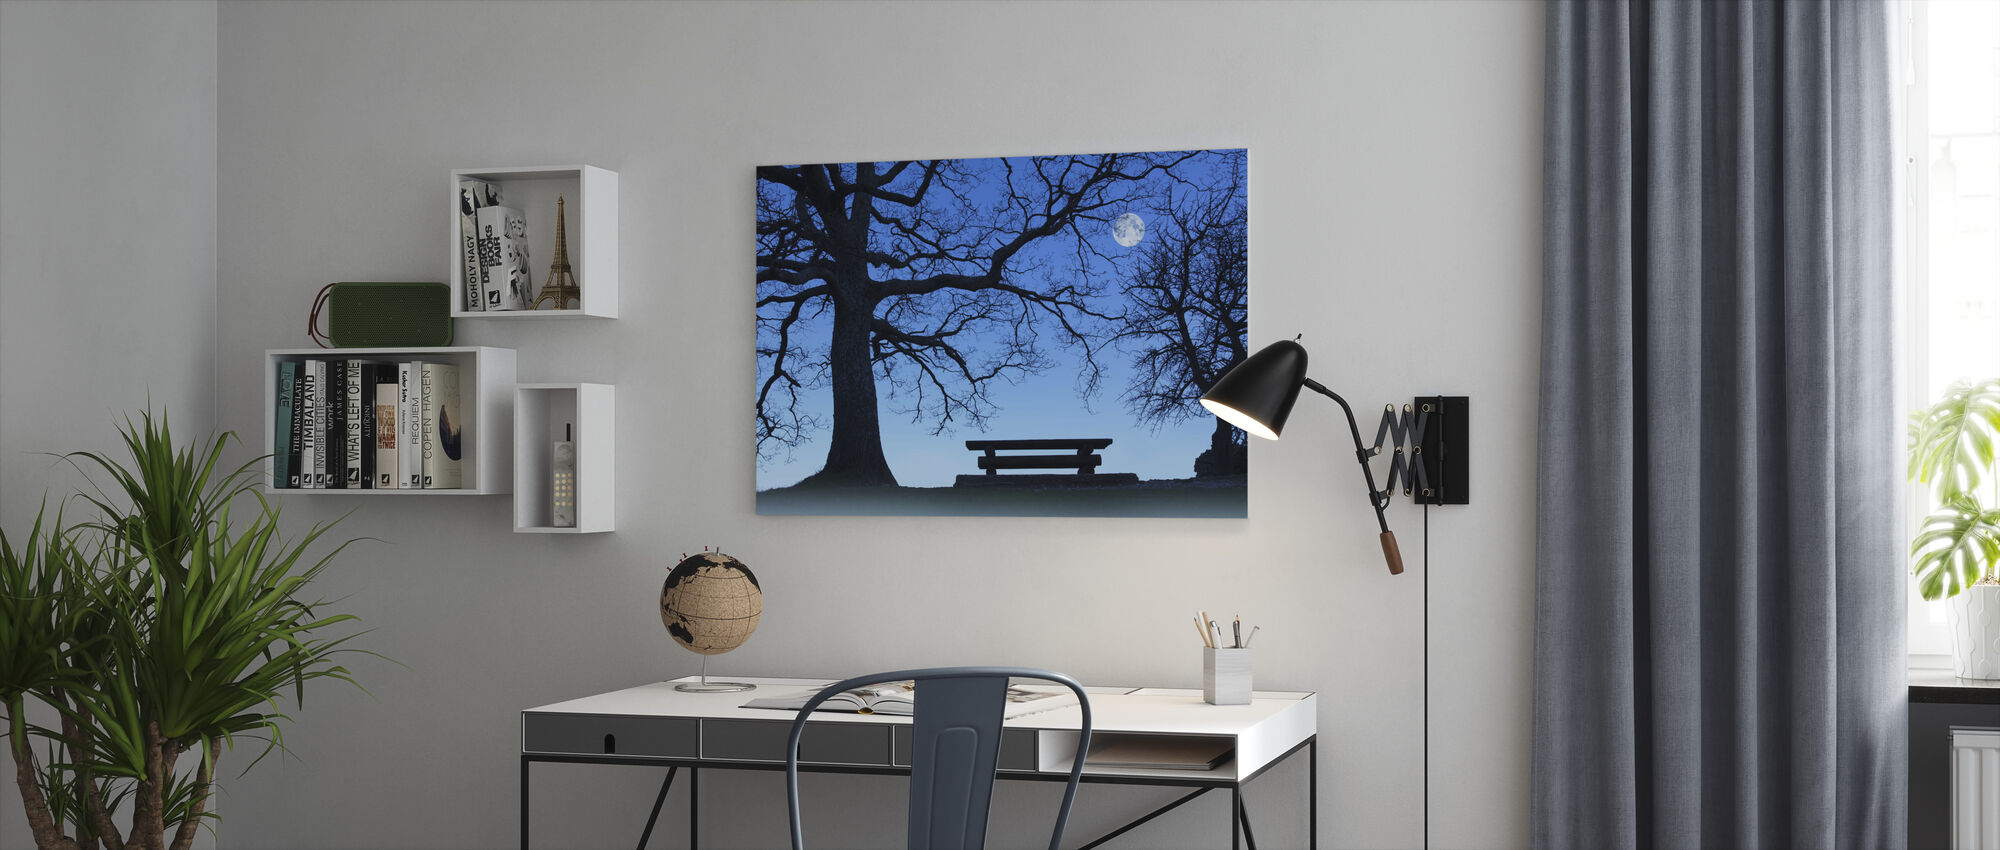 The Bench - Canvas print - Office